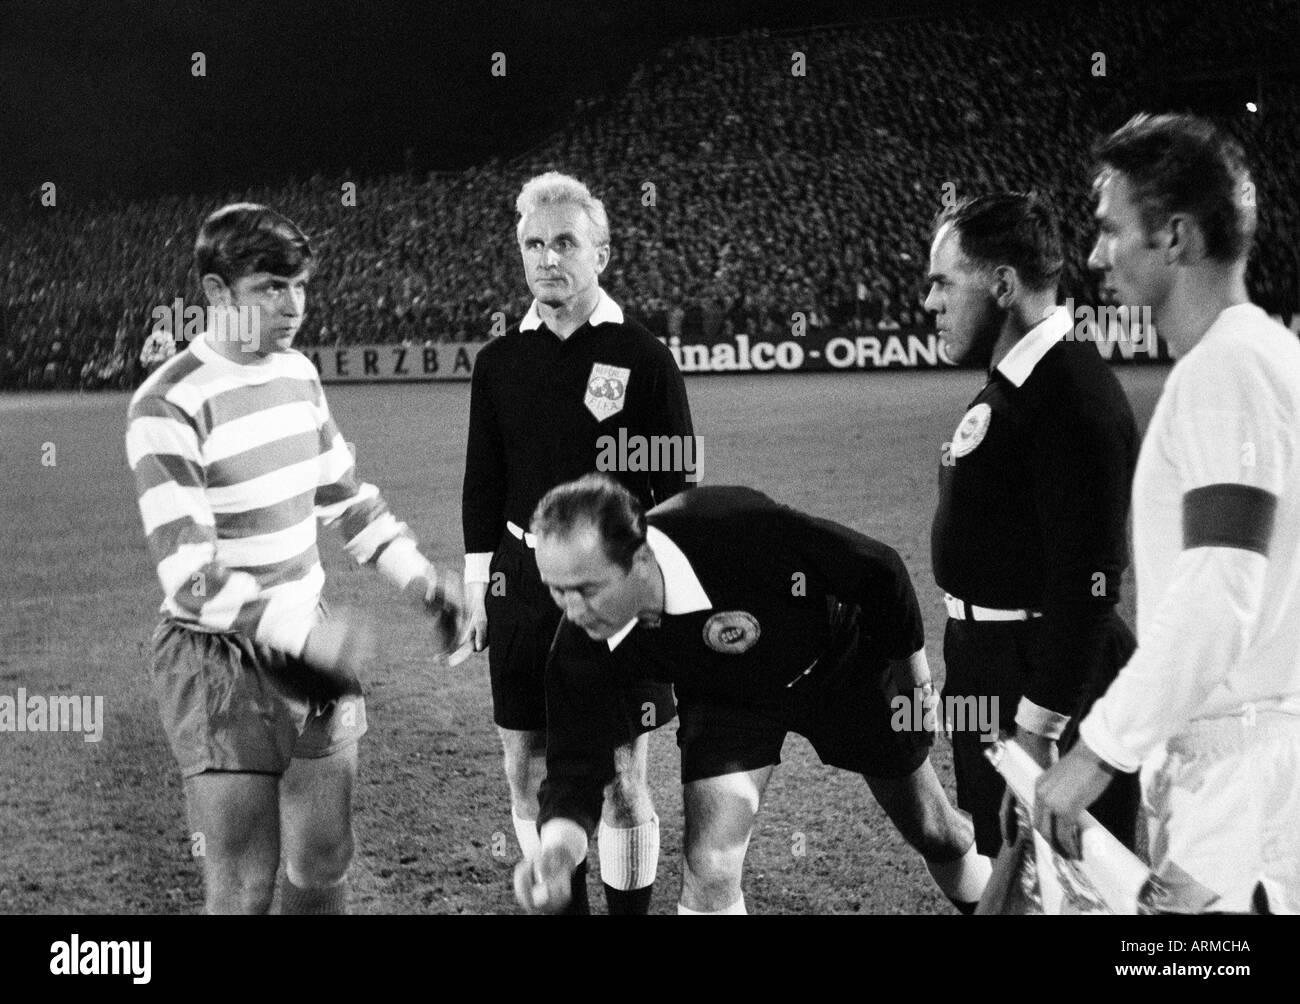 football, European Cup Winners Cup, first qualifying round, return leg, 1969/1970, FC Schalke 04 versus Shamrock Rovers 3:0, Glueckaufkampfbahn Stadium in Gelsenkirchen, welcome and toss-up, in the middle referee Kazakov (Soviet Union) and his assistants, - Stock Image